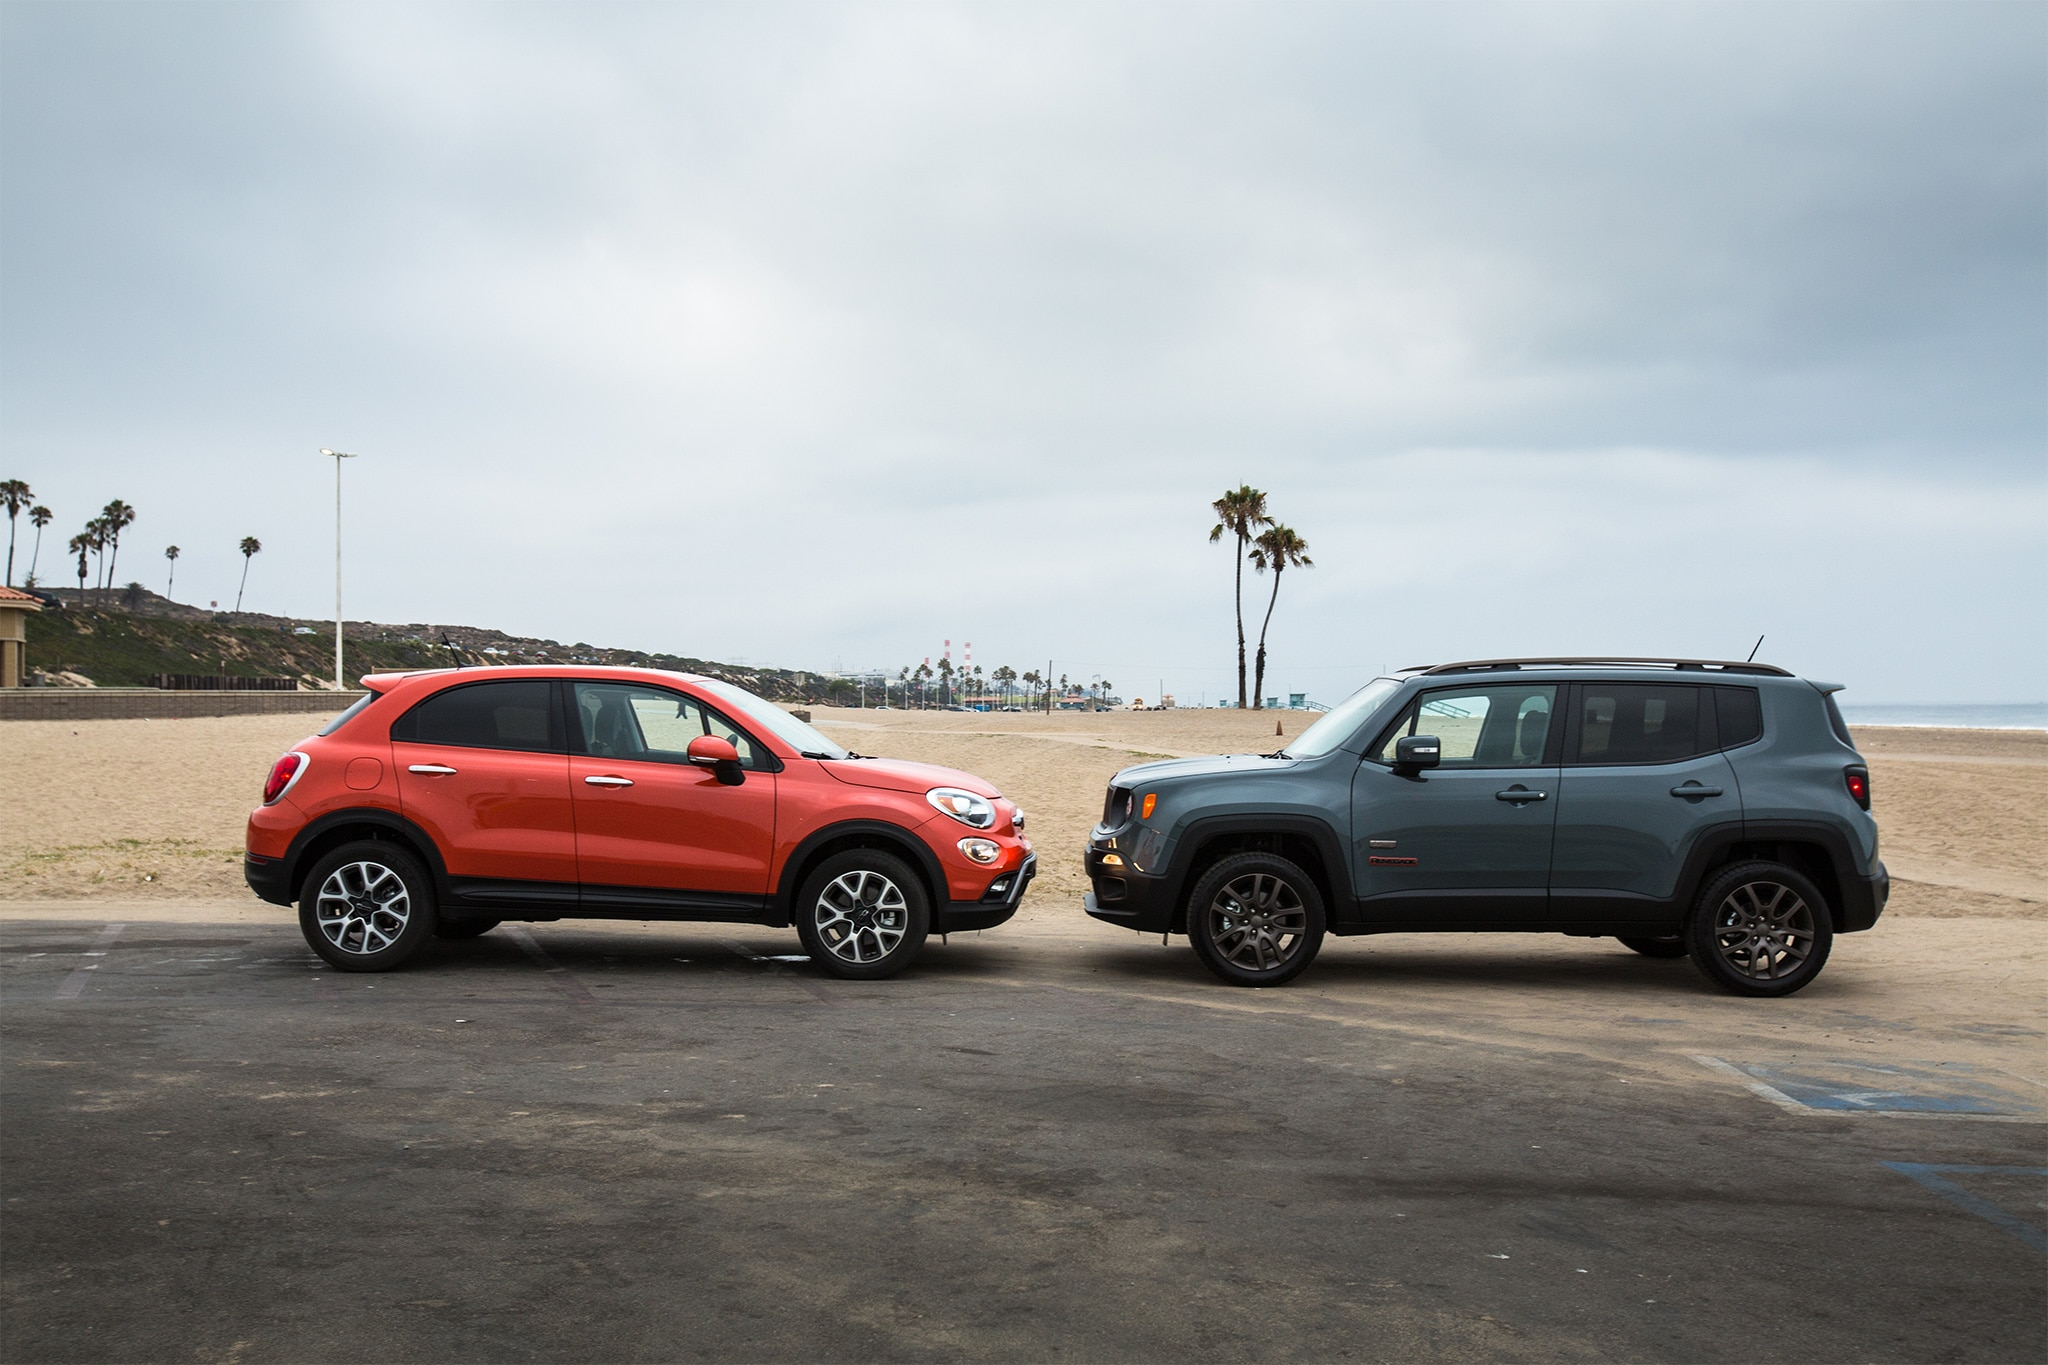 Jeep Renegade Tire Size >> 2016 Fiat 500X Trekking AWD - Better or Worse Than the Jeep Renegade? | Automobile Magazine